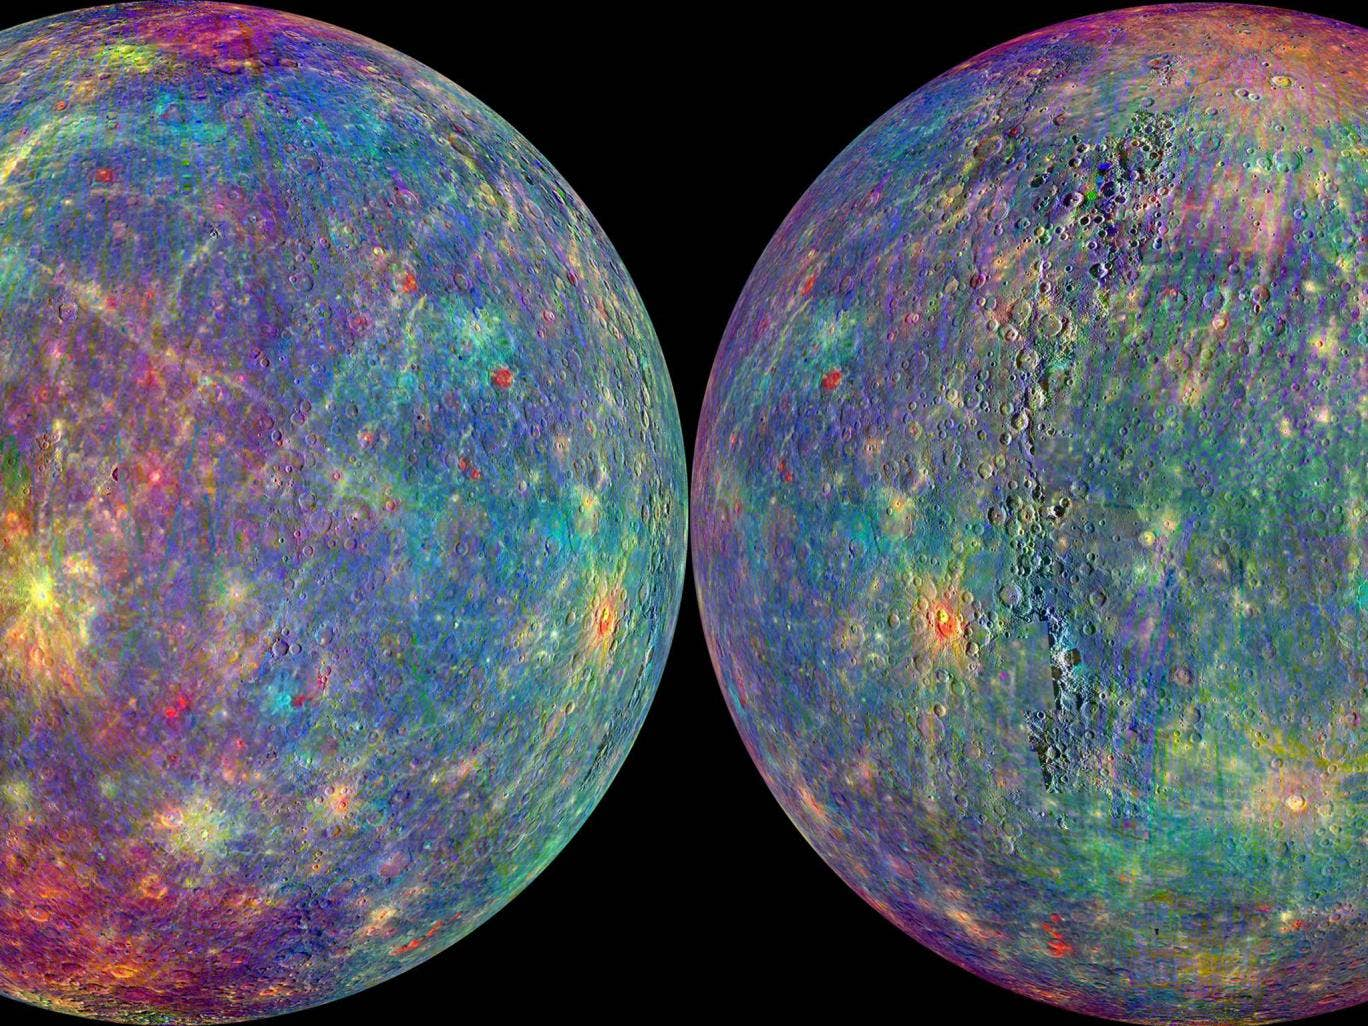 Solar system Exploration - Mercury - In pictures